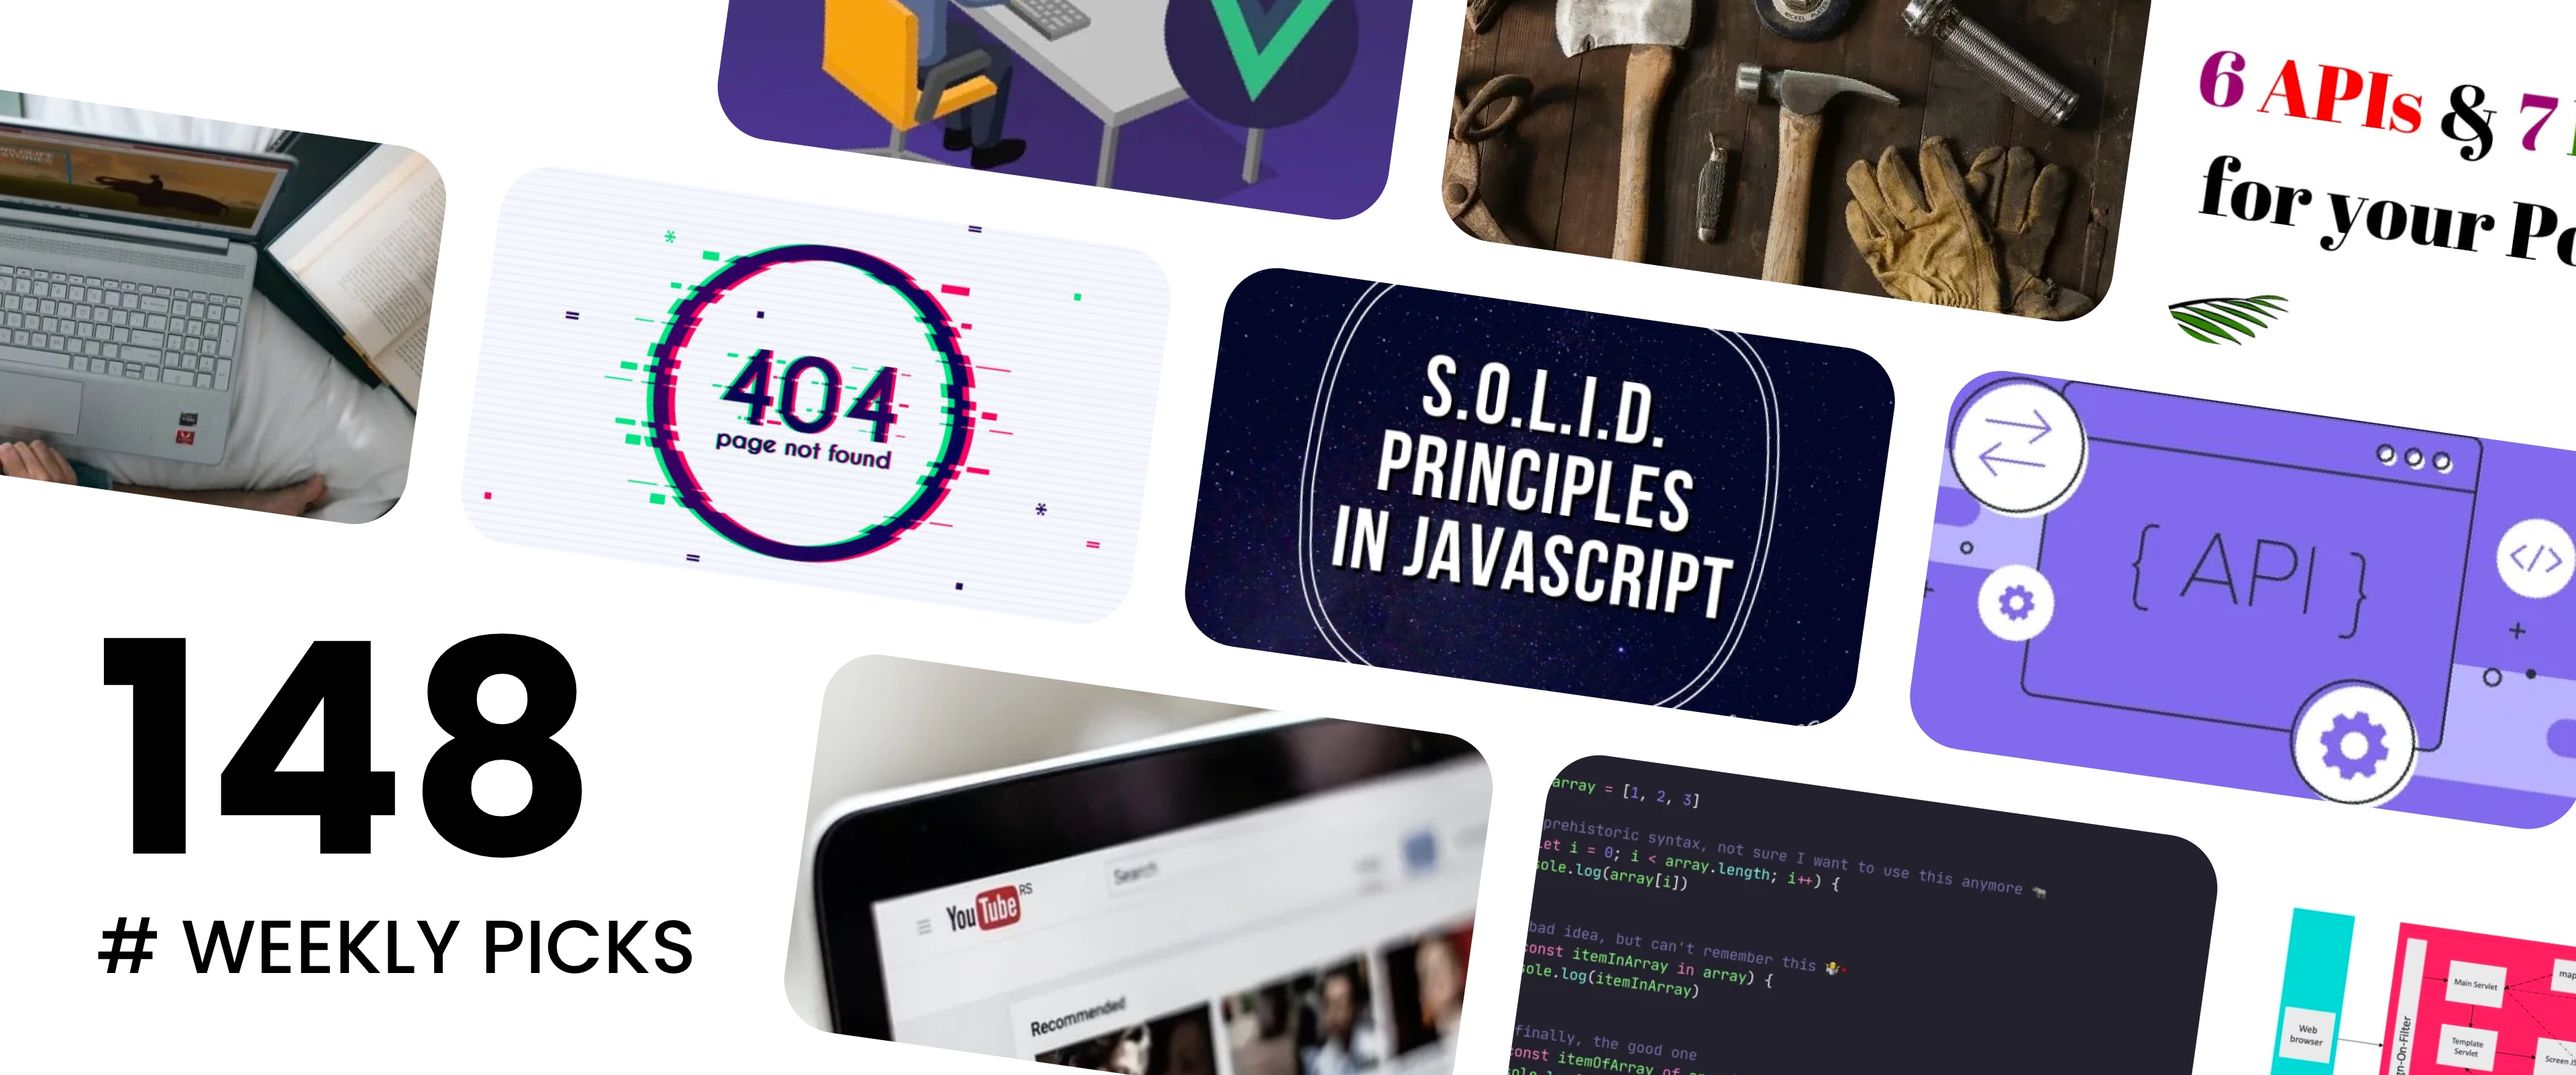 🔥 What's Hot in Web Development? — Weekly Picks #148